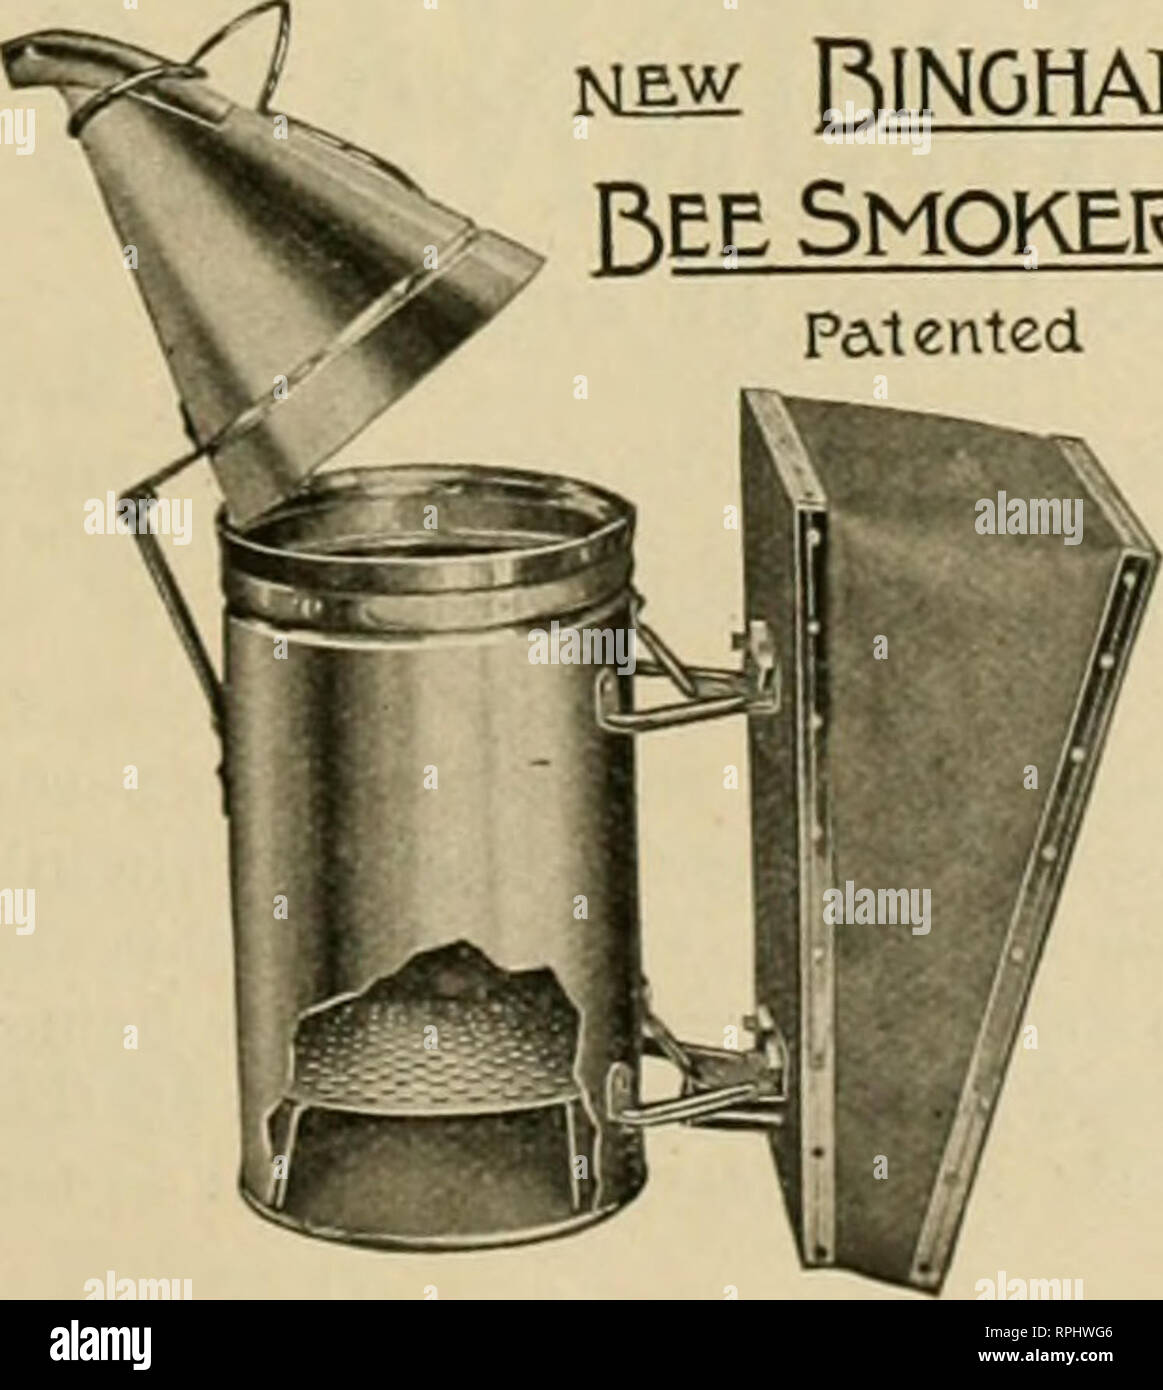 . American bee journal. Bee culture; Bees. NEW PtiNGHAM ^l*® I*®* Bingham Bee-Smoker Smoker Patented. the all important tool of the mof=t ex- tensive honey-producers of the world. This illustration shows the remarkable steel-fire grate which such men as Mr. France, Mr. Rrauchfuss, the Dadants and others say is the best on the mar- ket. The Smoke Engine grate has 381 holes for the air and draft, equal to an opening 2 inches square. Buy the large sizes and be pleased. For sale at your dealers or direct. Weight each. Smoke Engine 4-Hich stove iVlbs. $1.25 Doctor 3!4-inch stove.i?8 ?? .85 Two larg - Stock Image